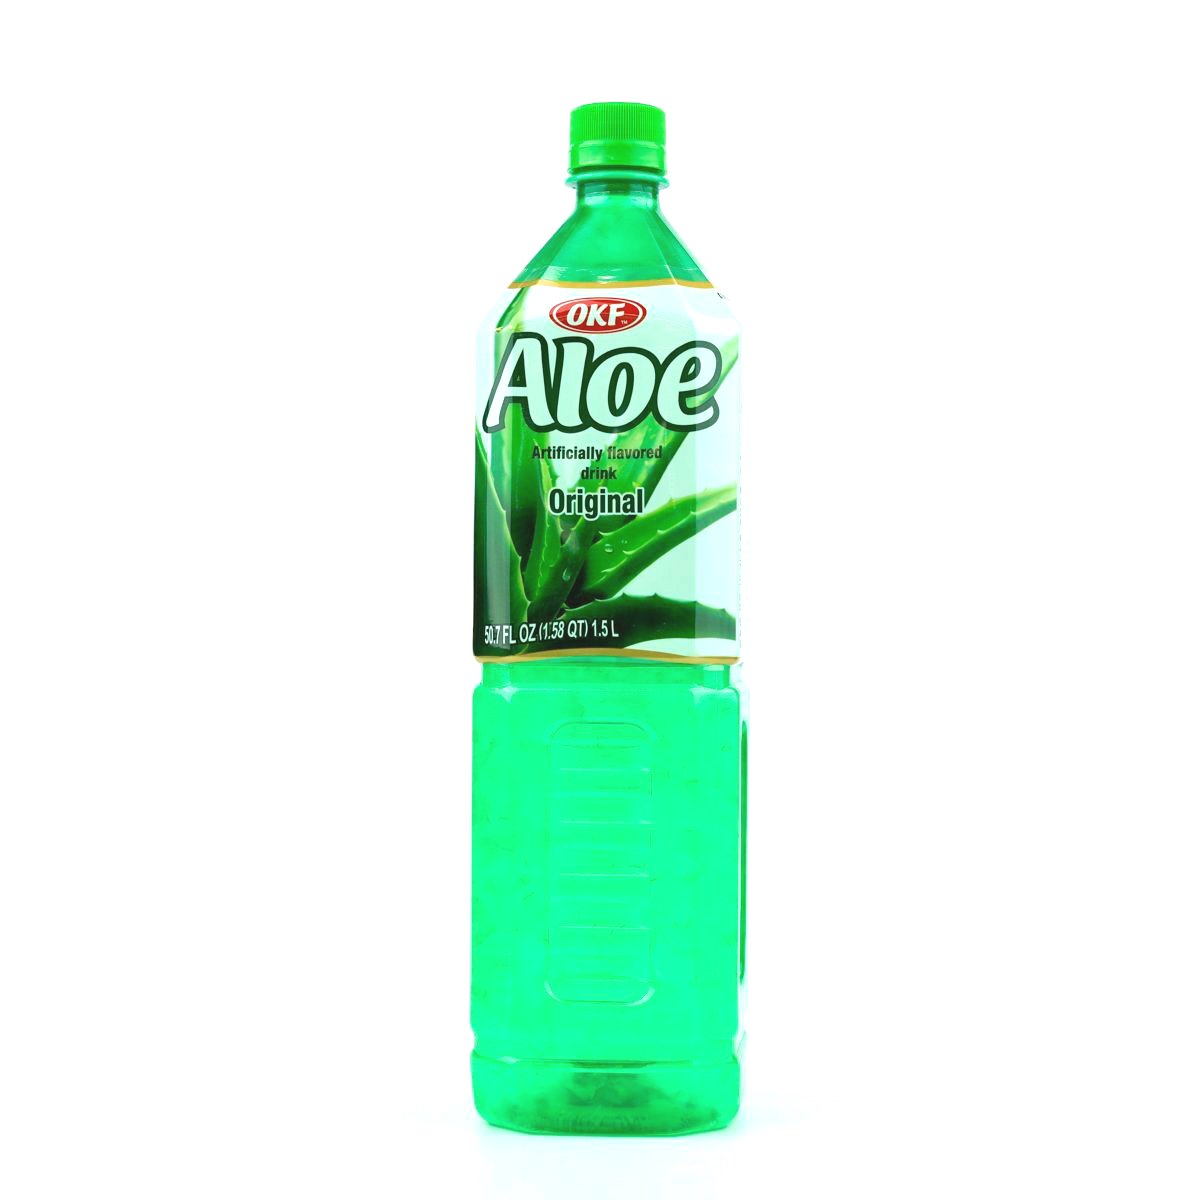 OKF Aloe - Original